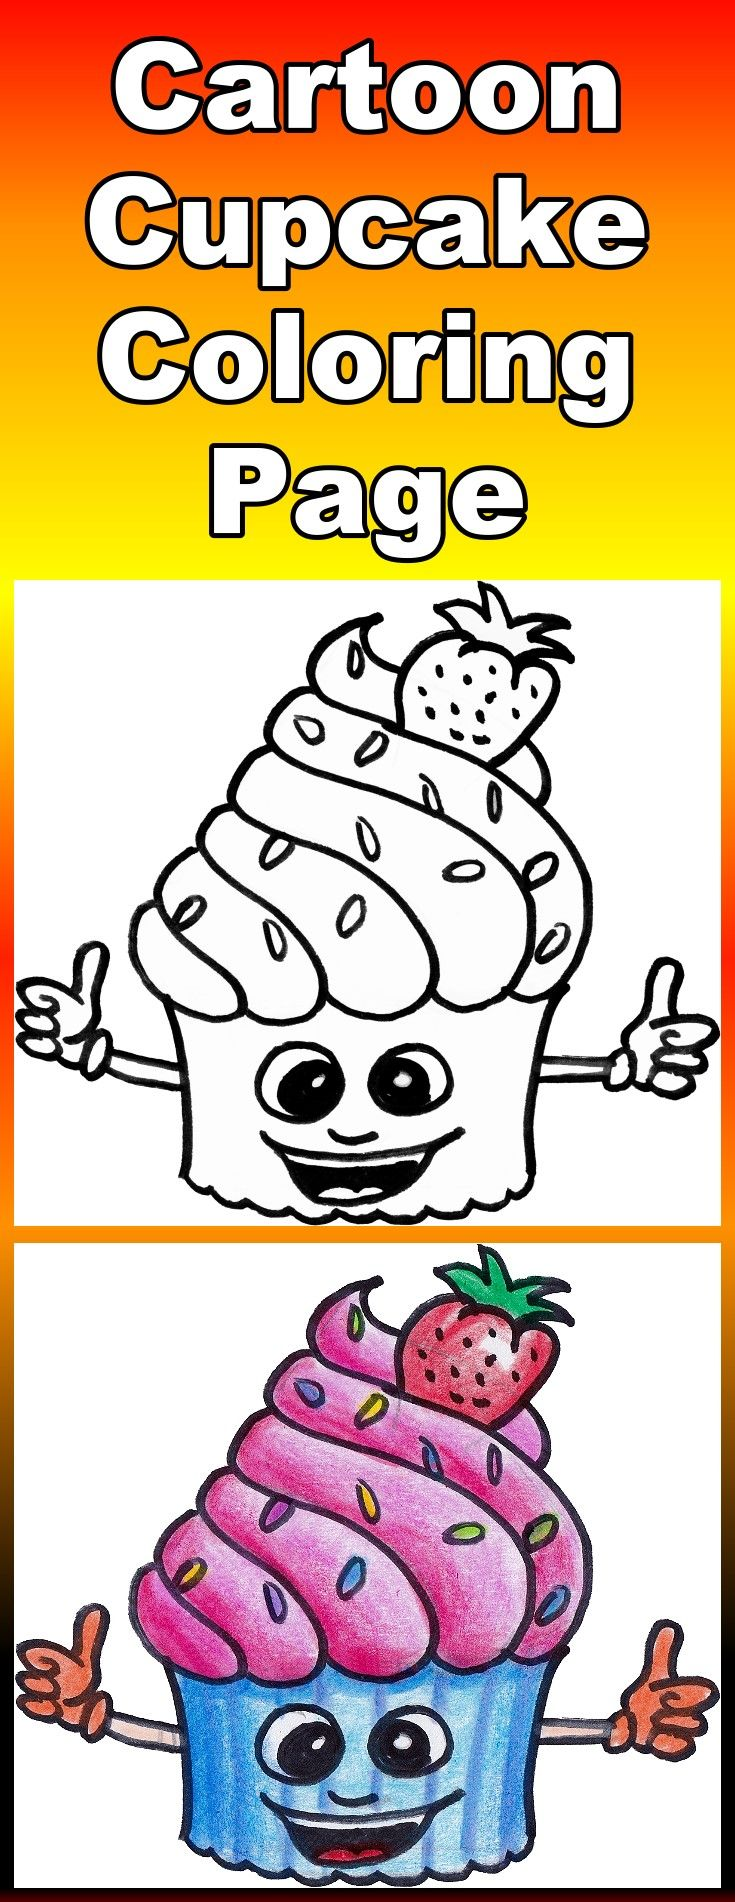 Free coloring page for kids - includes downloadable pdf and a video showing how to draw and color the cartoon cupcake